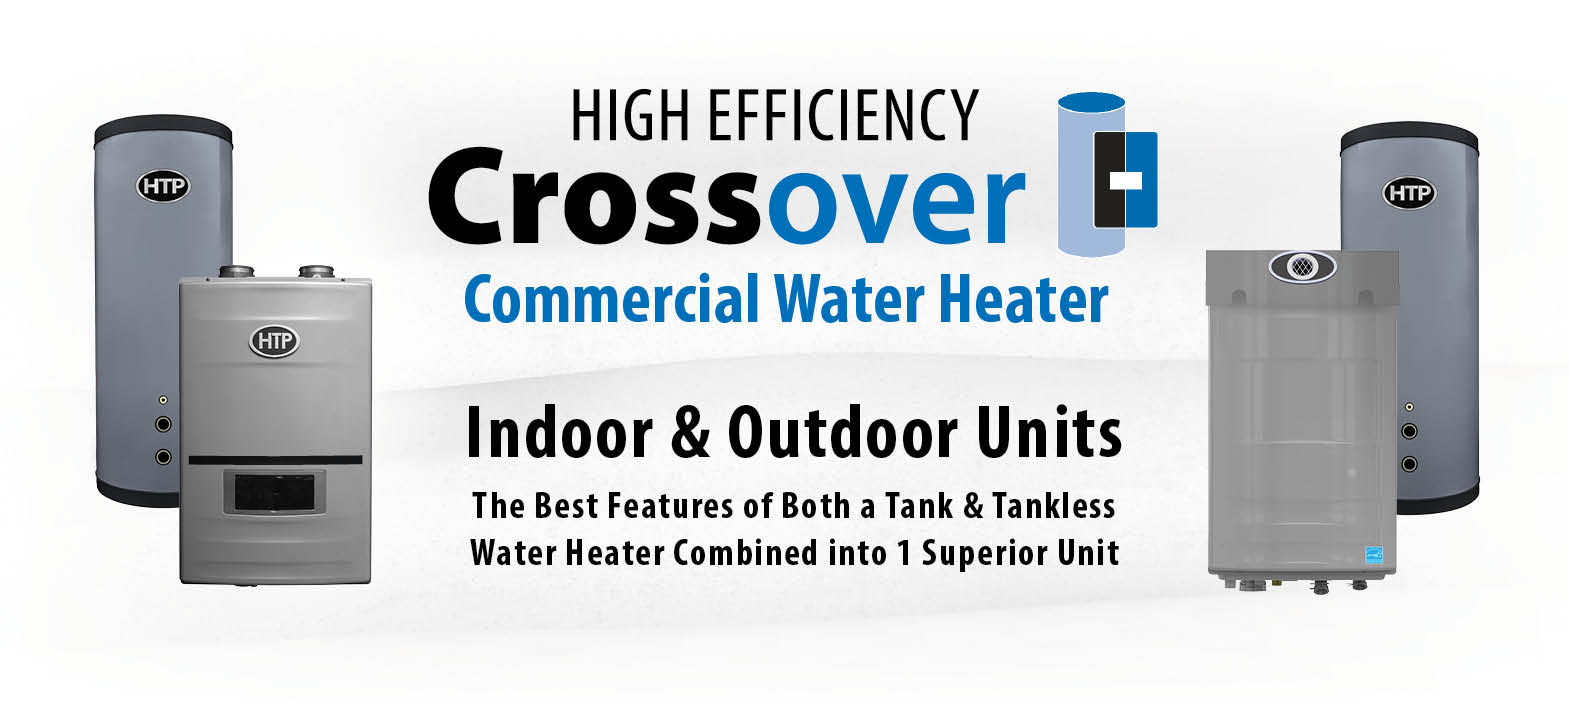 Crossover Commercial Water Heater